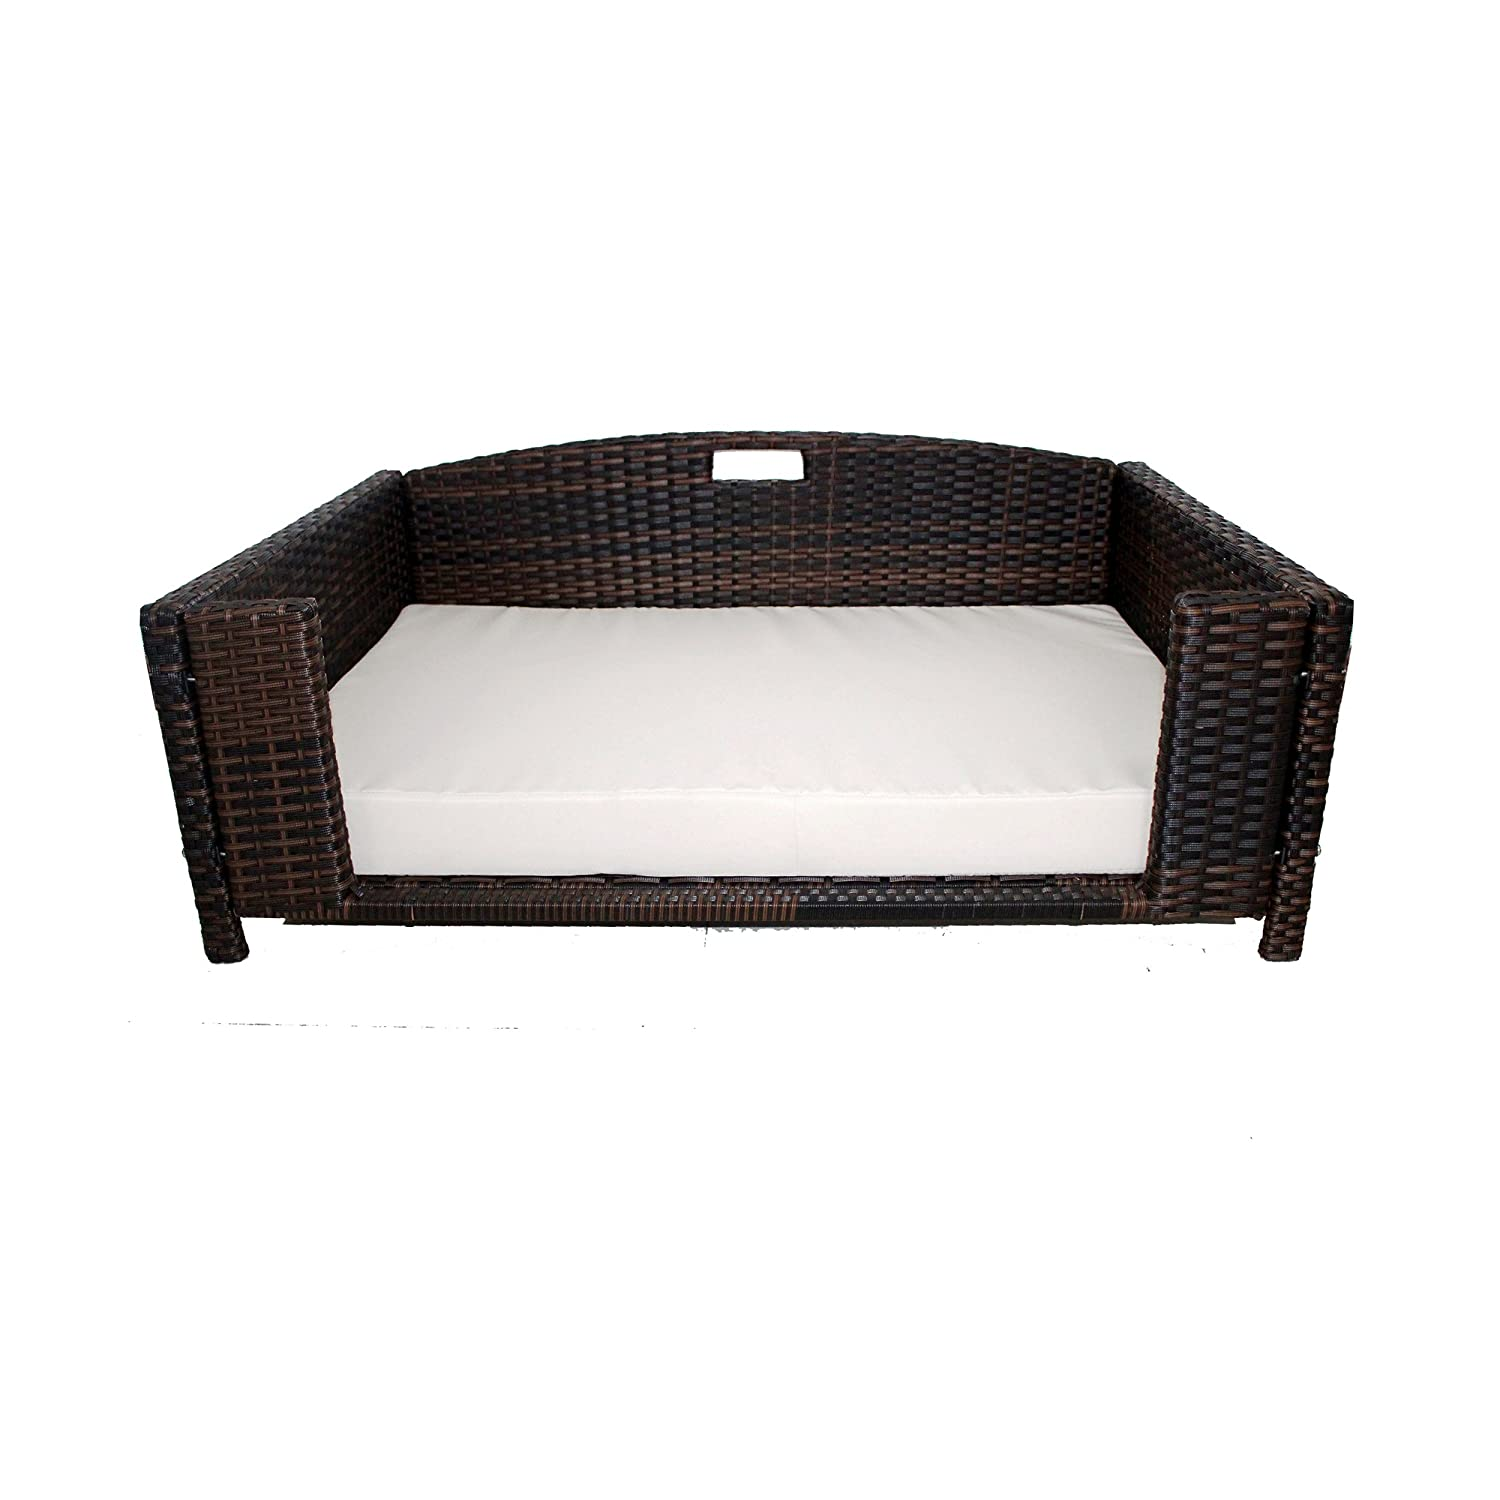 Iconic Pet Rectangular Rattan Wicker Pet Bed In Varying Sizes Metal Framed Indoor Outdoor Furniture For Dogs Cats Made Of Pliable Rattan